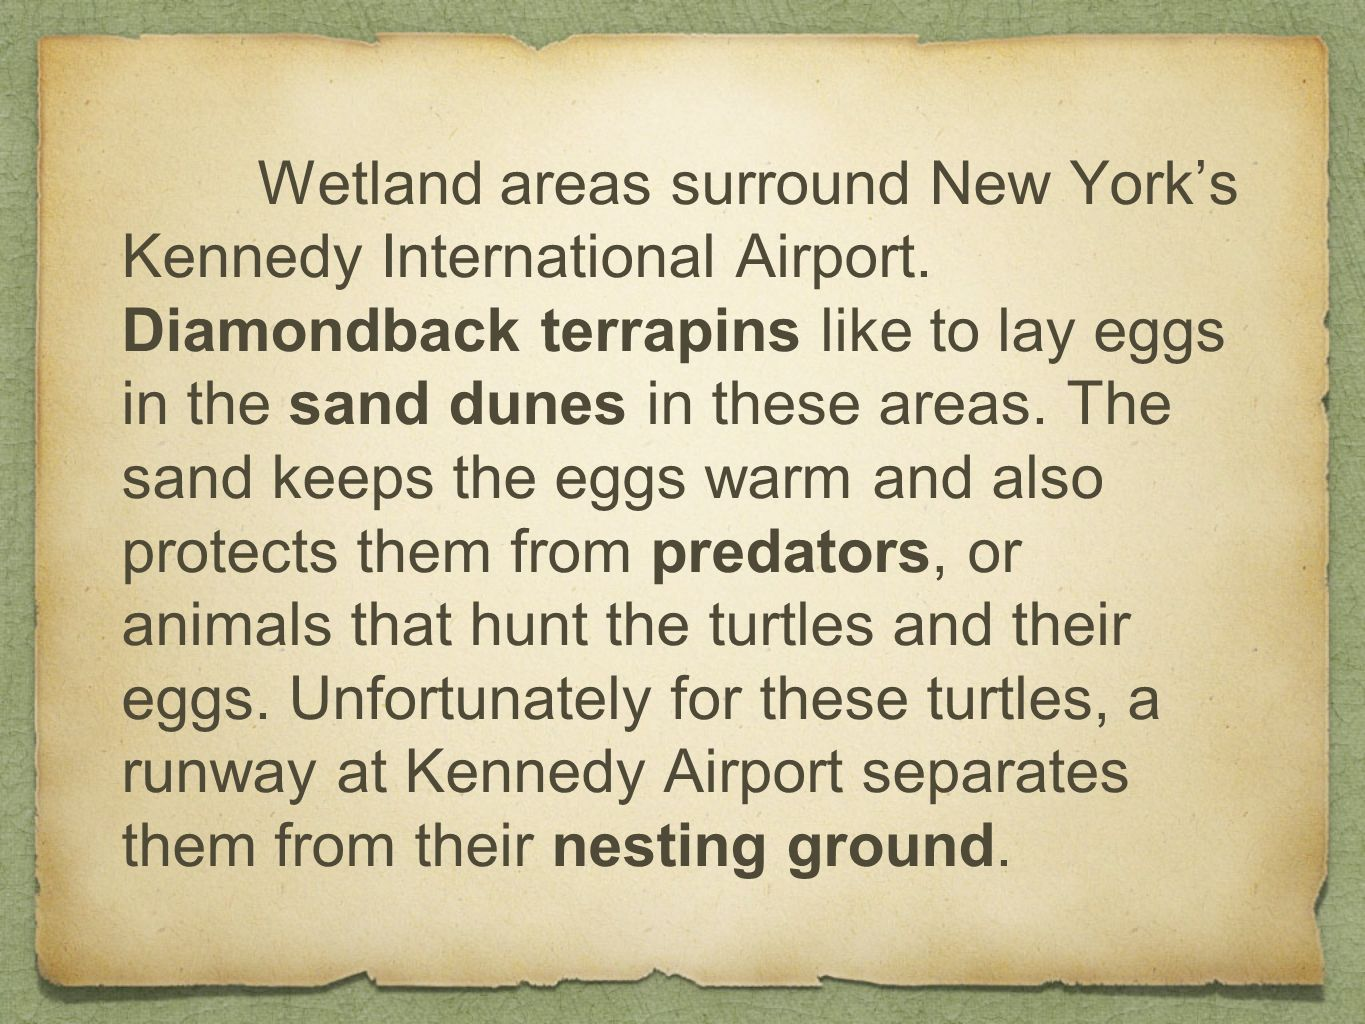 Wetland areas surround New York's Kennedy International Airport